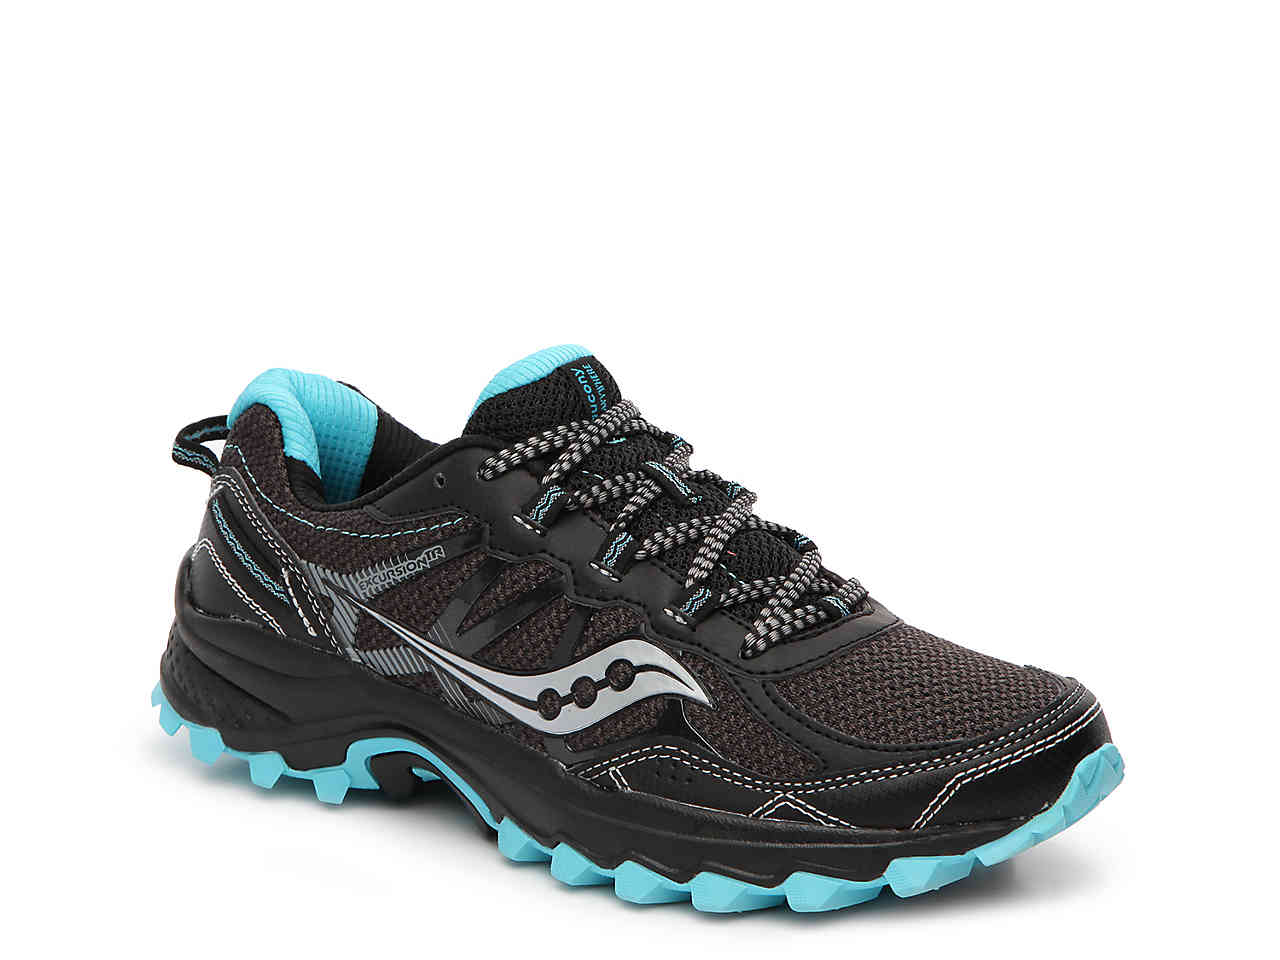 saucony shoes trail